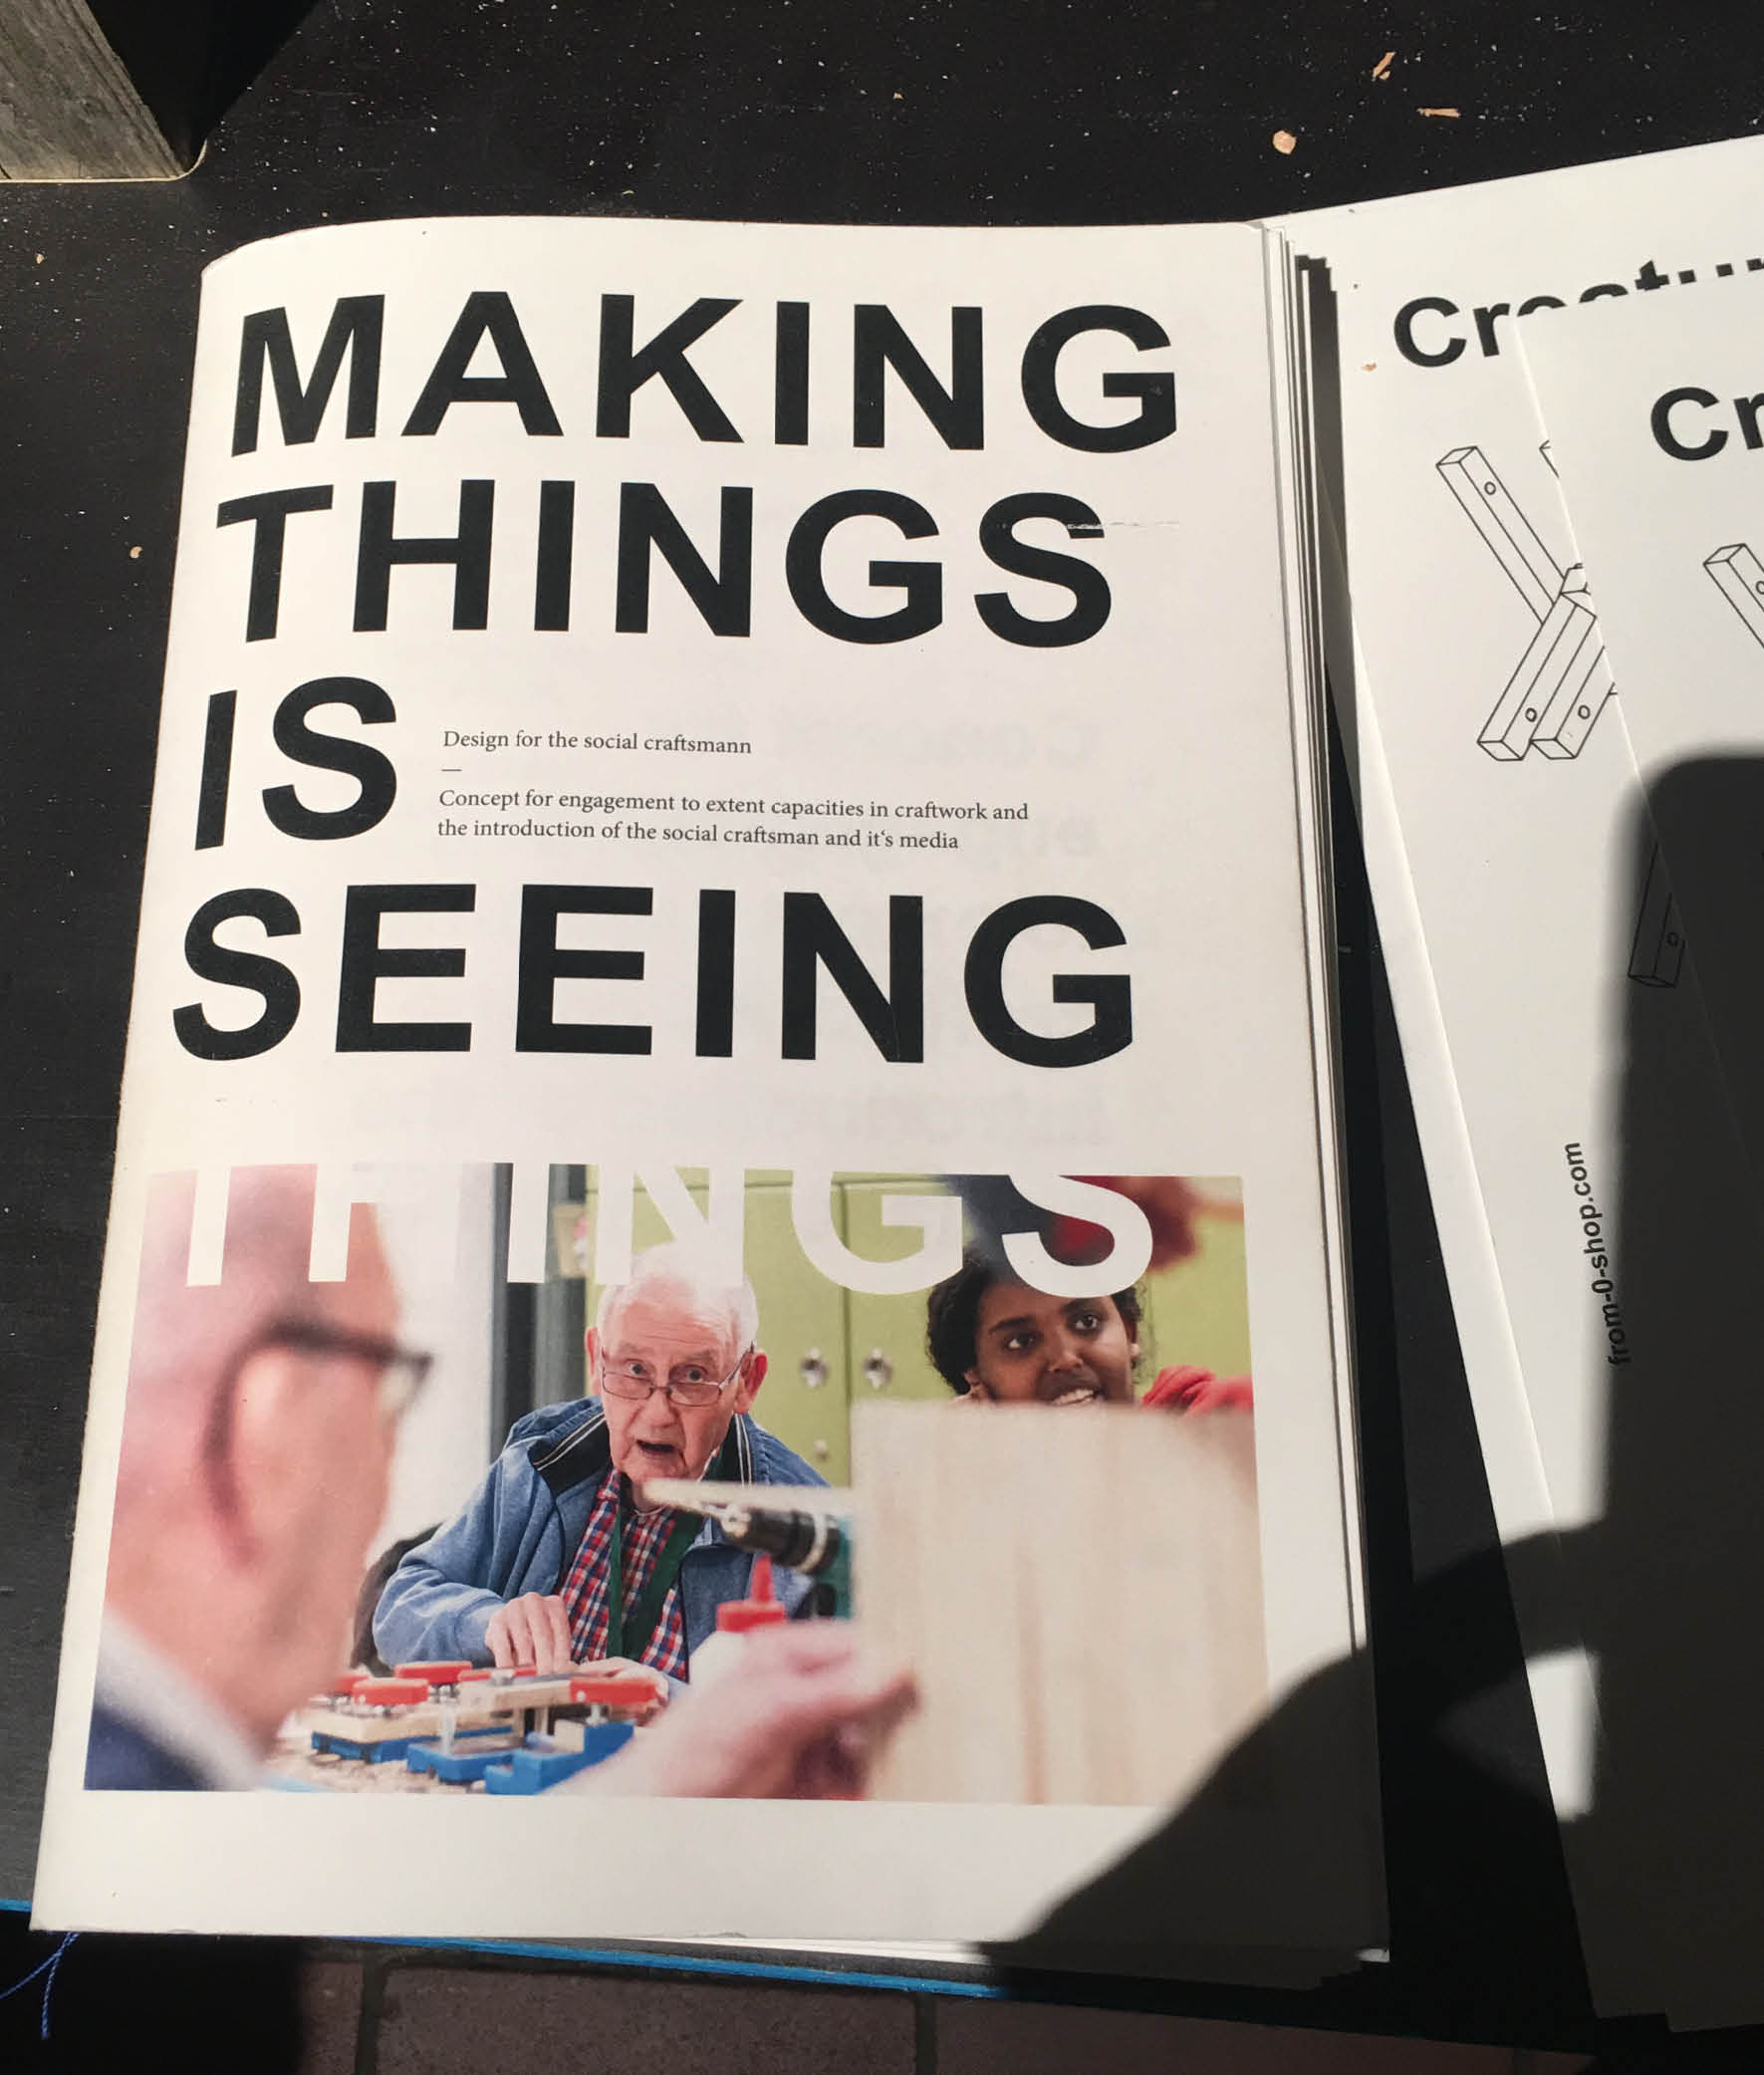 Making Things is seeing things/Rubin Weidner. Dutch Design Week, Eindhoven 2019